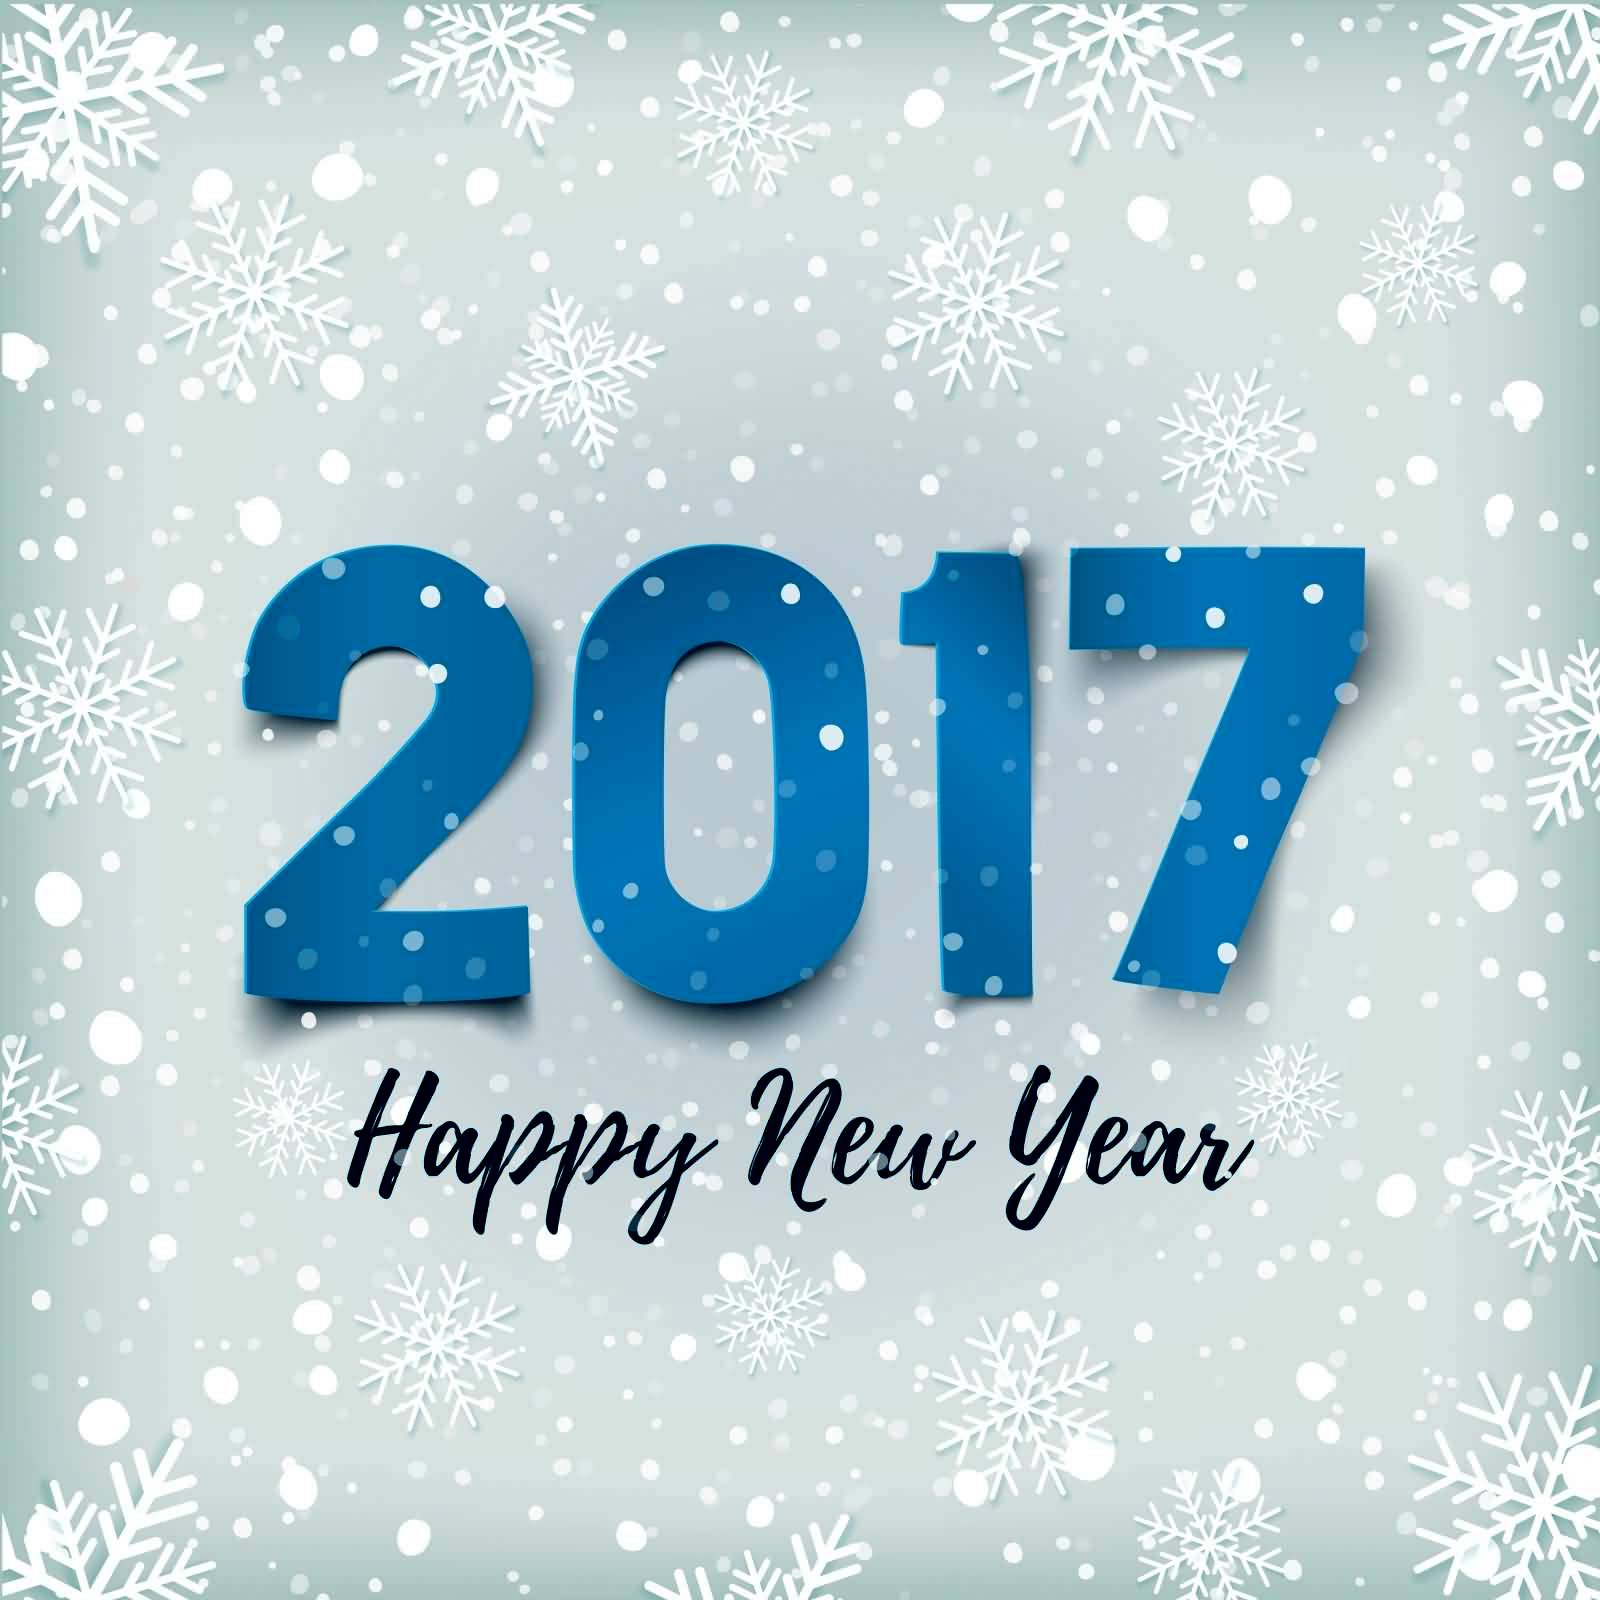 2017 Happy New Year Snowflakes Design Greeting Card